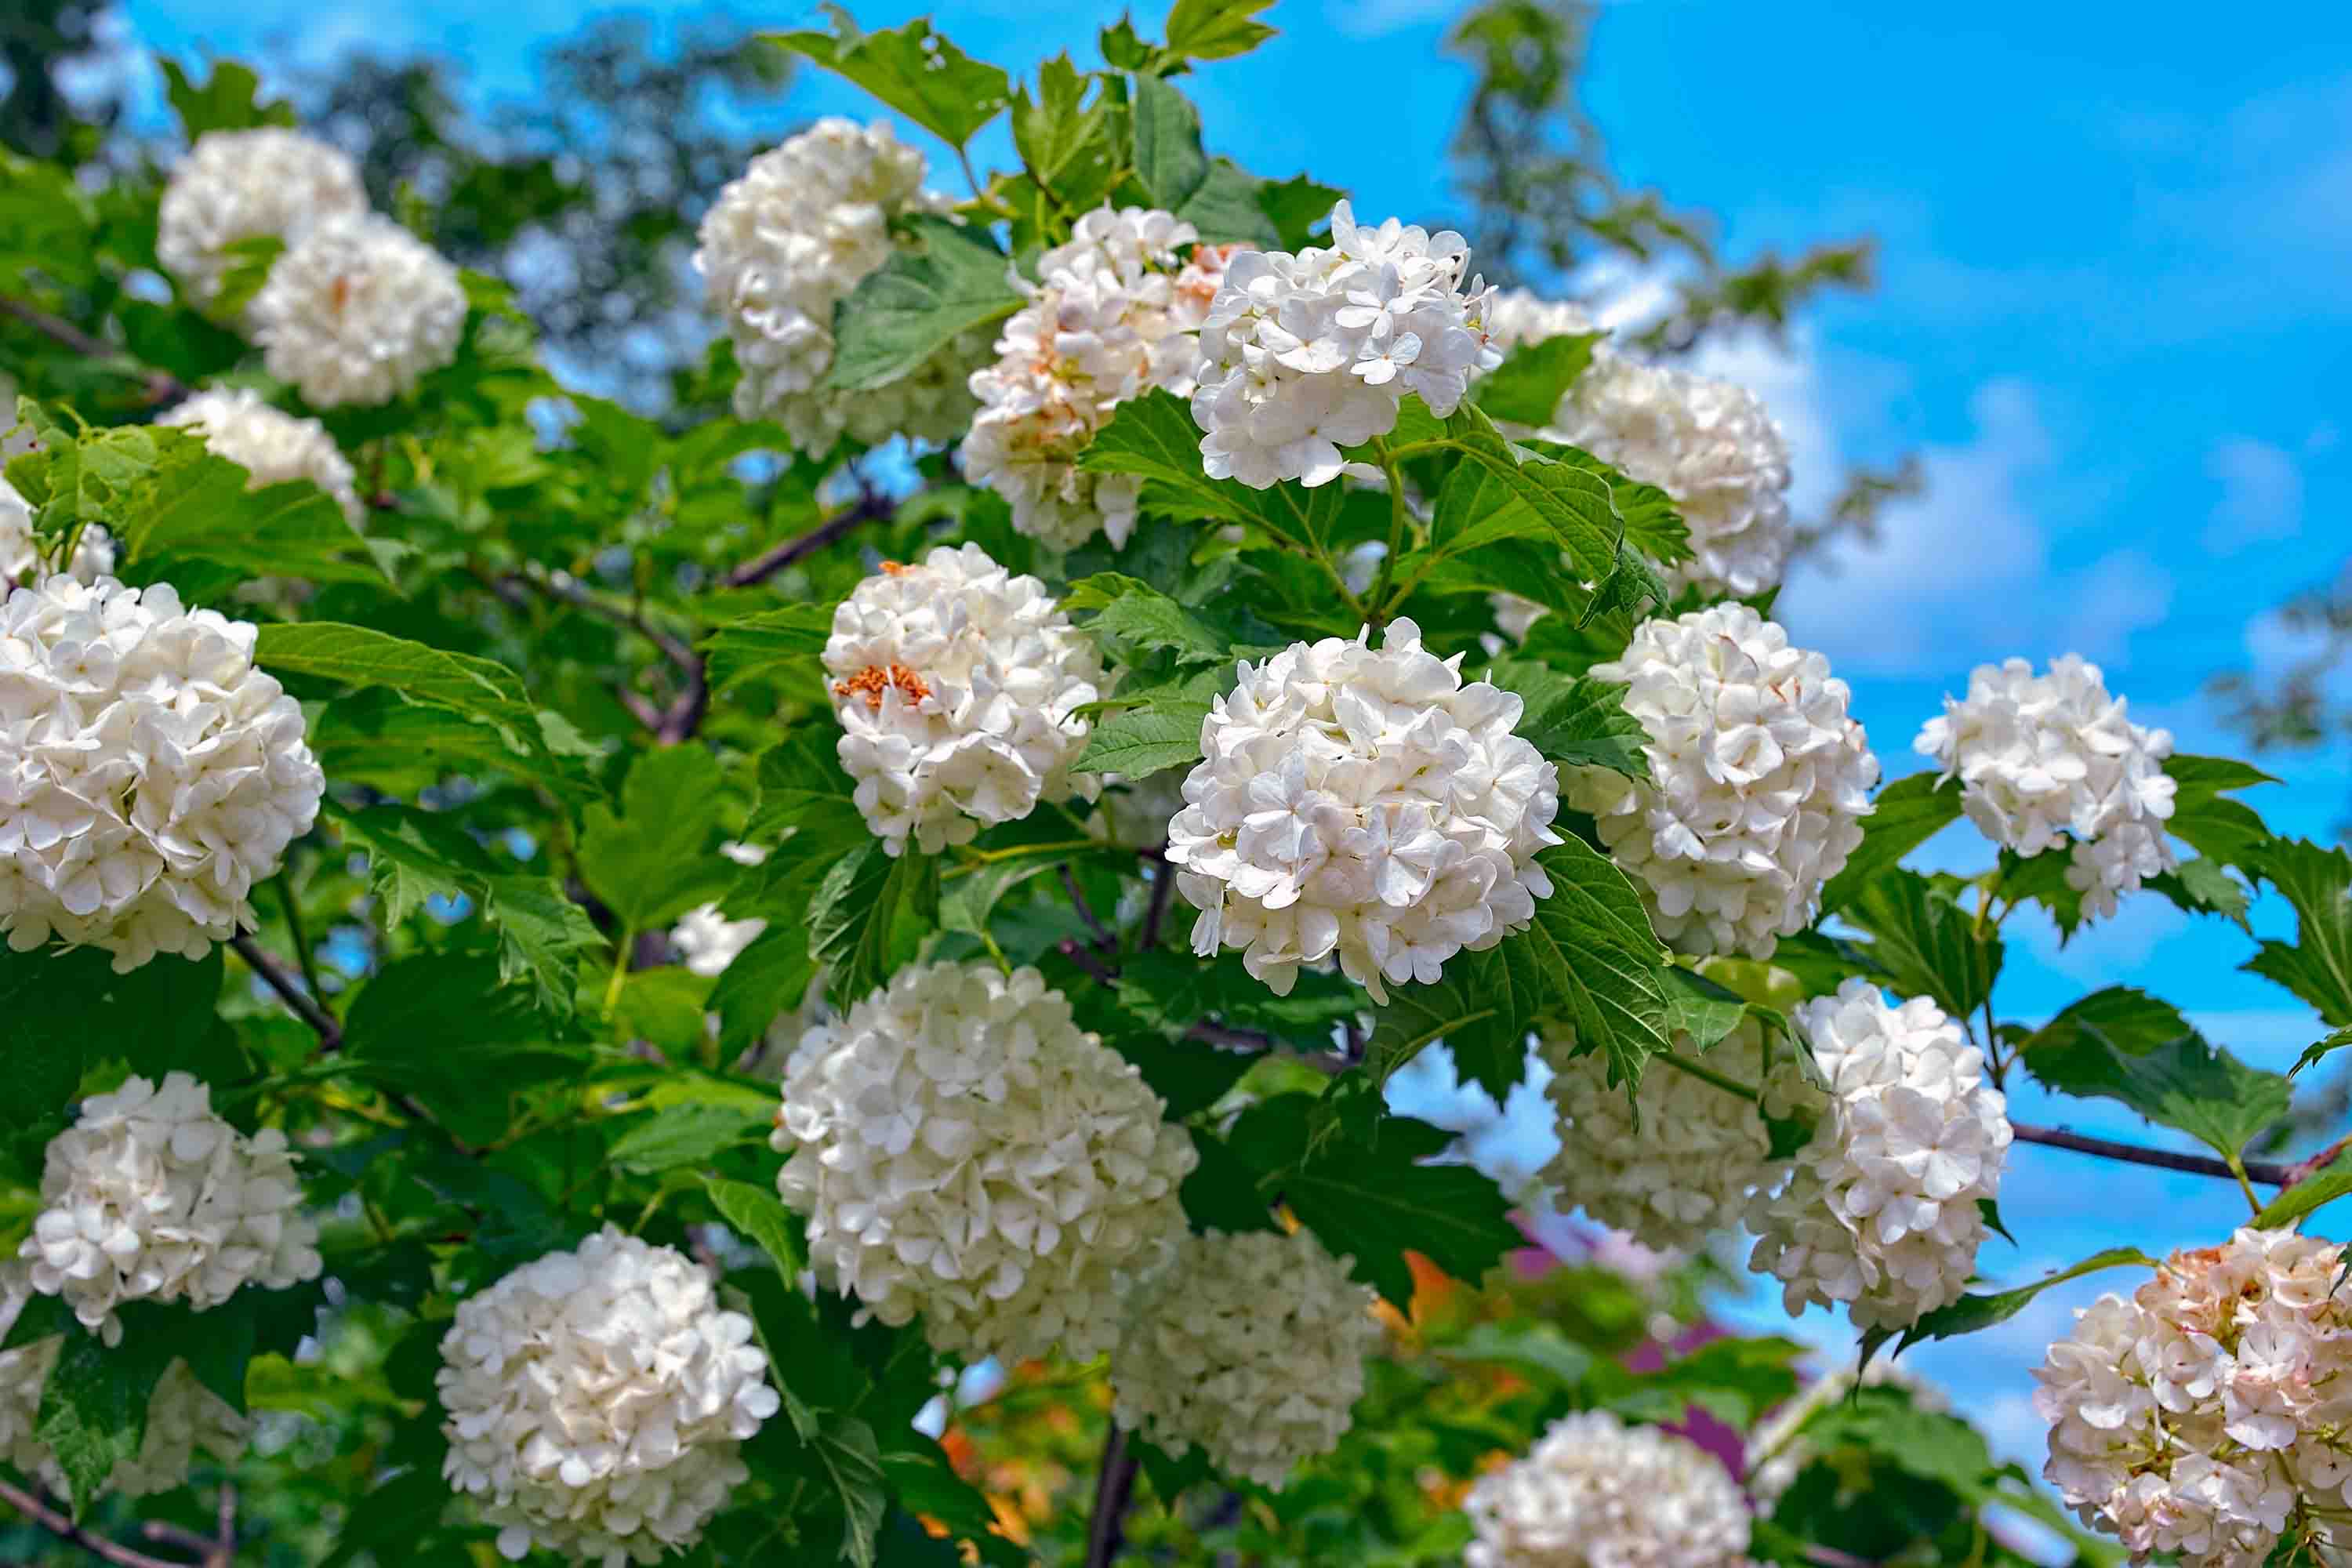 Blossom of guelder rose - Arrowwood, Snowball Bush, European Snowball. Beautiful white Viburnum opulus 'Roseum'  is a large, deciduous shrub with lobed leaves that take on red tints in autumn.